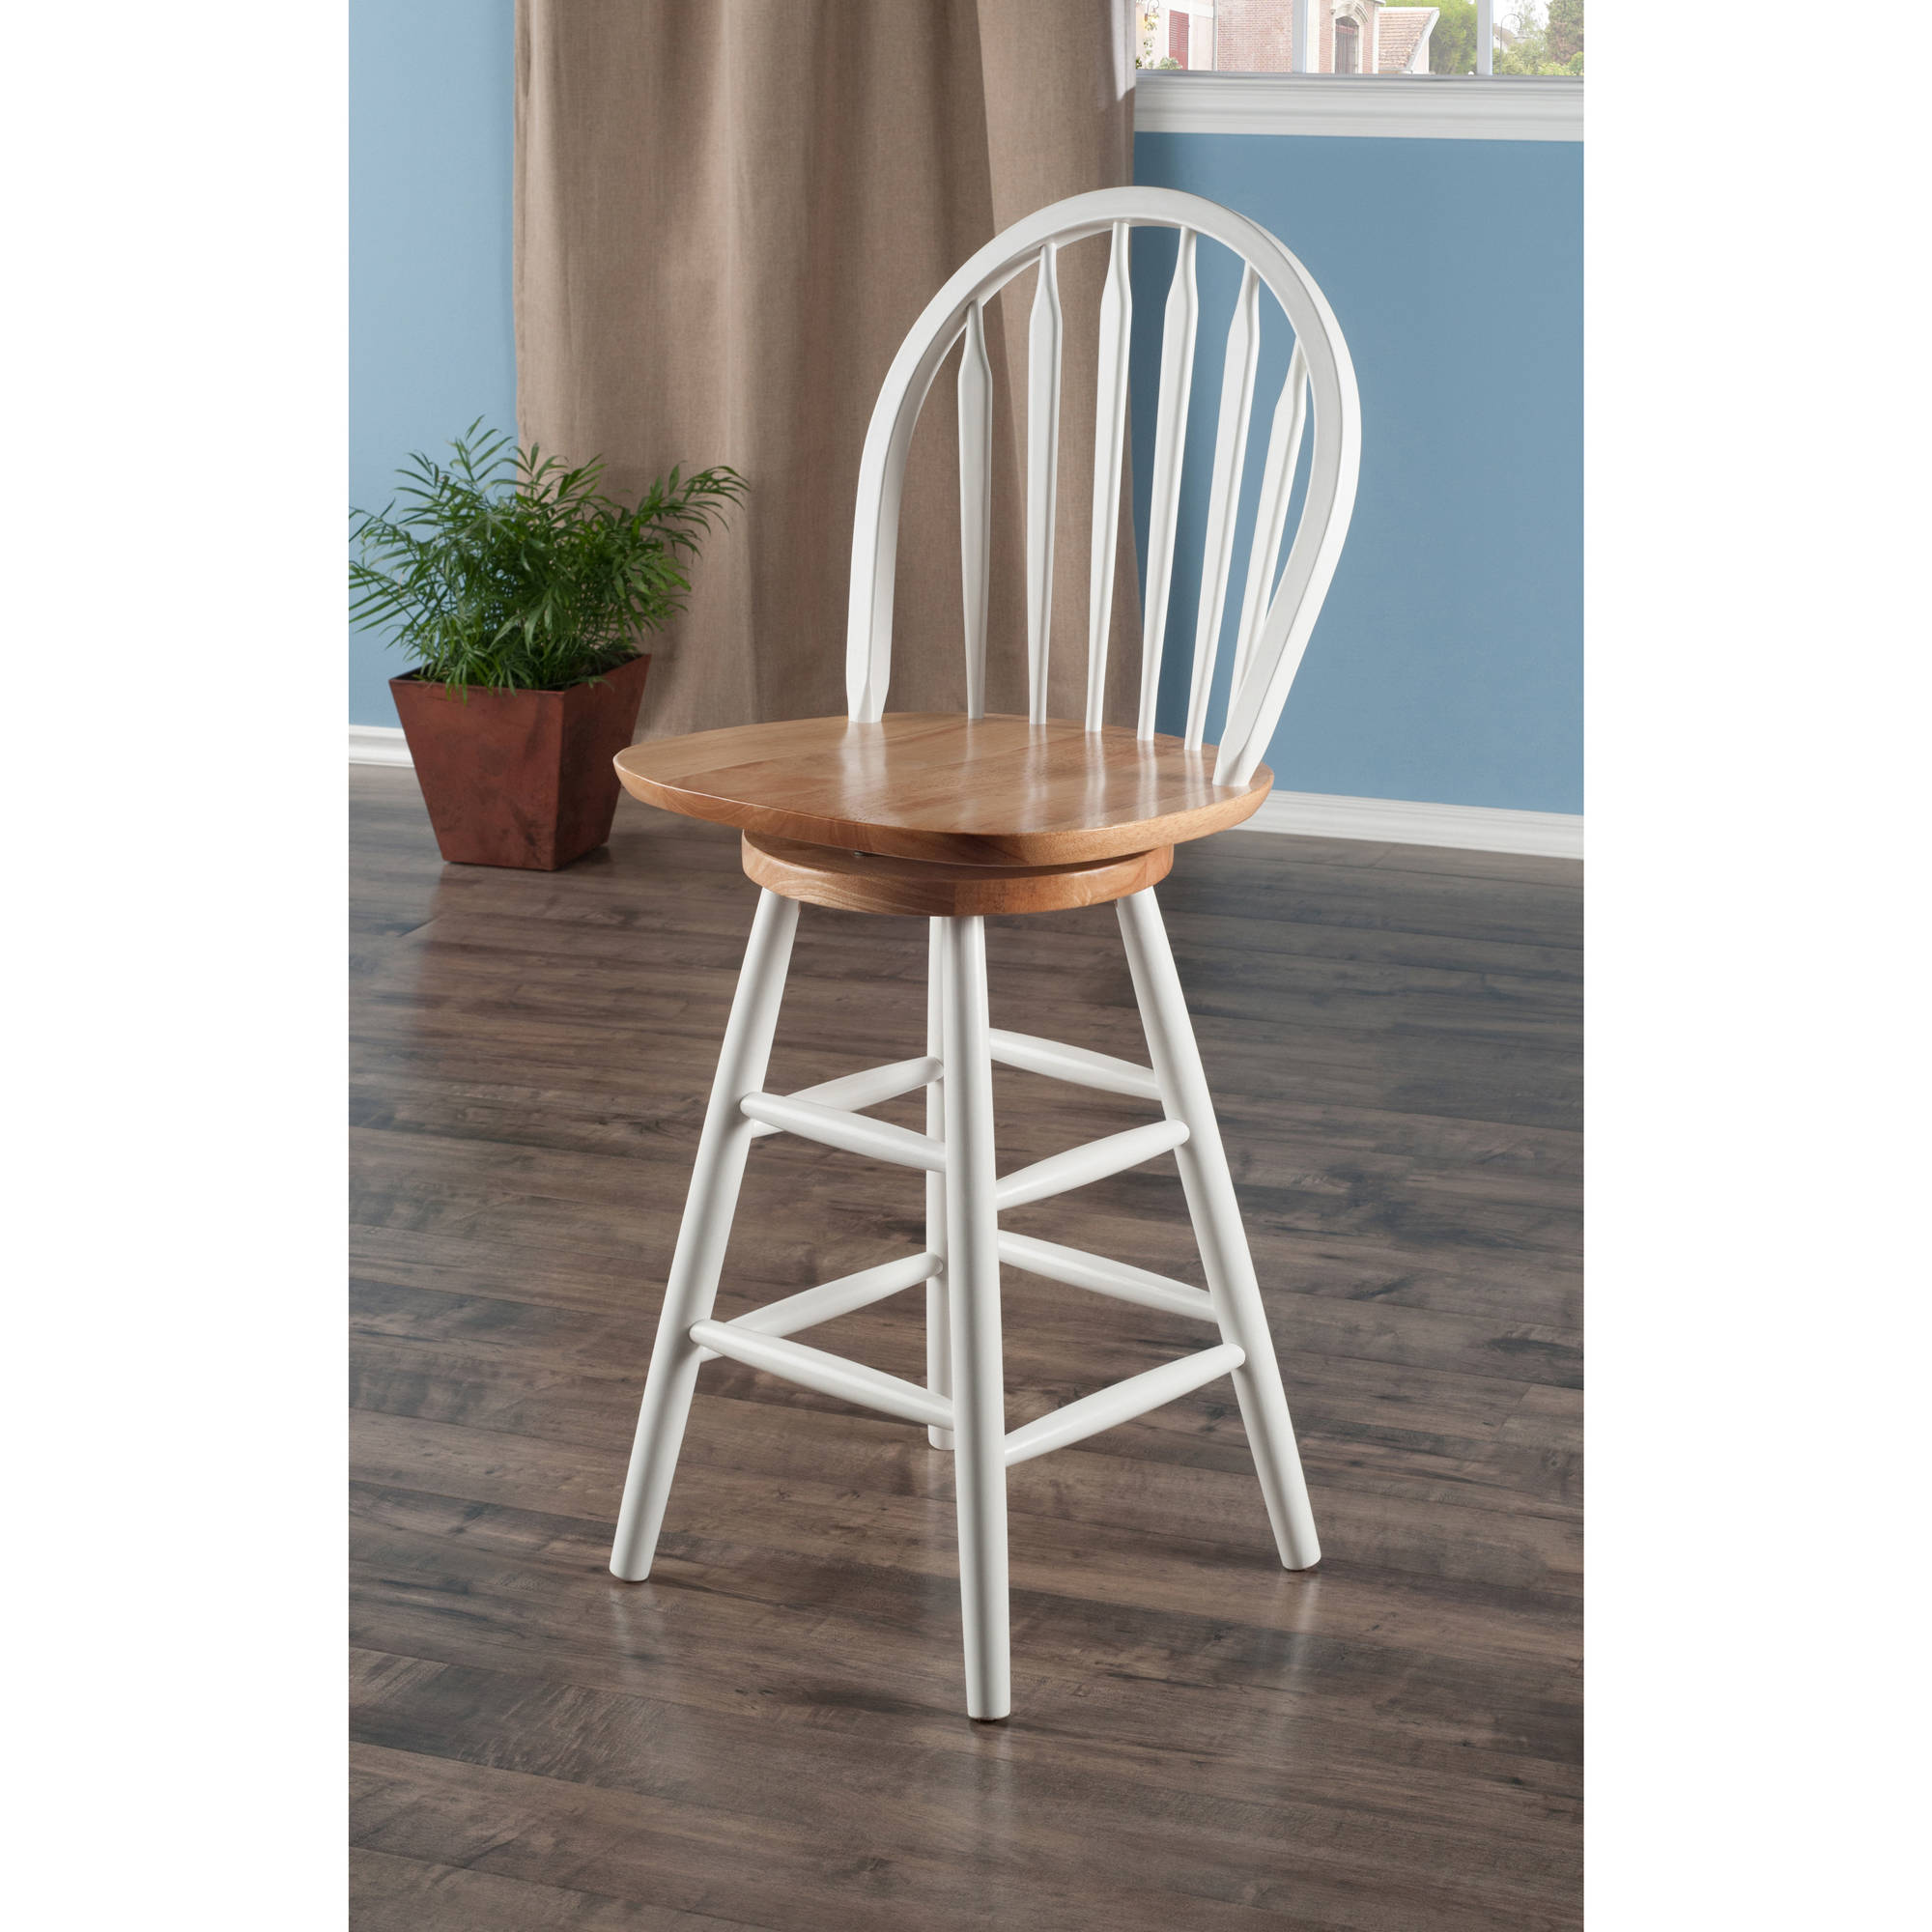 Winsome Wood Wagner 24 Arrow Back Windsor Swivel Counter Stool